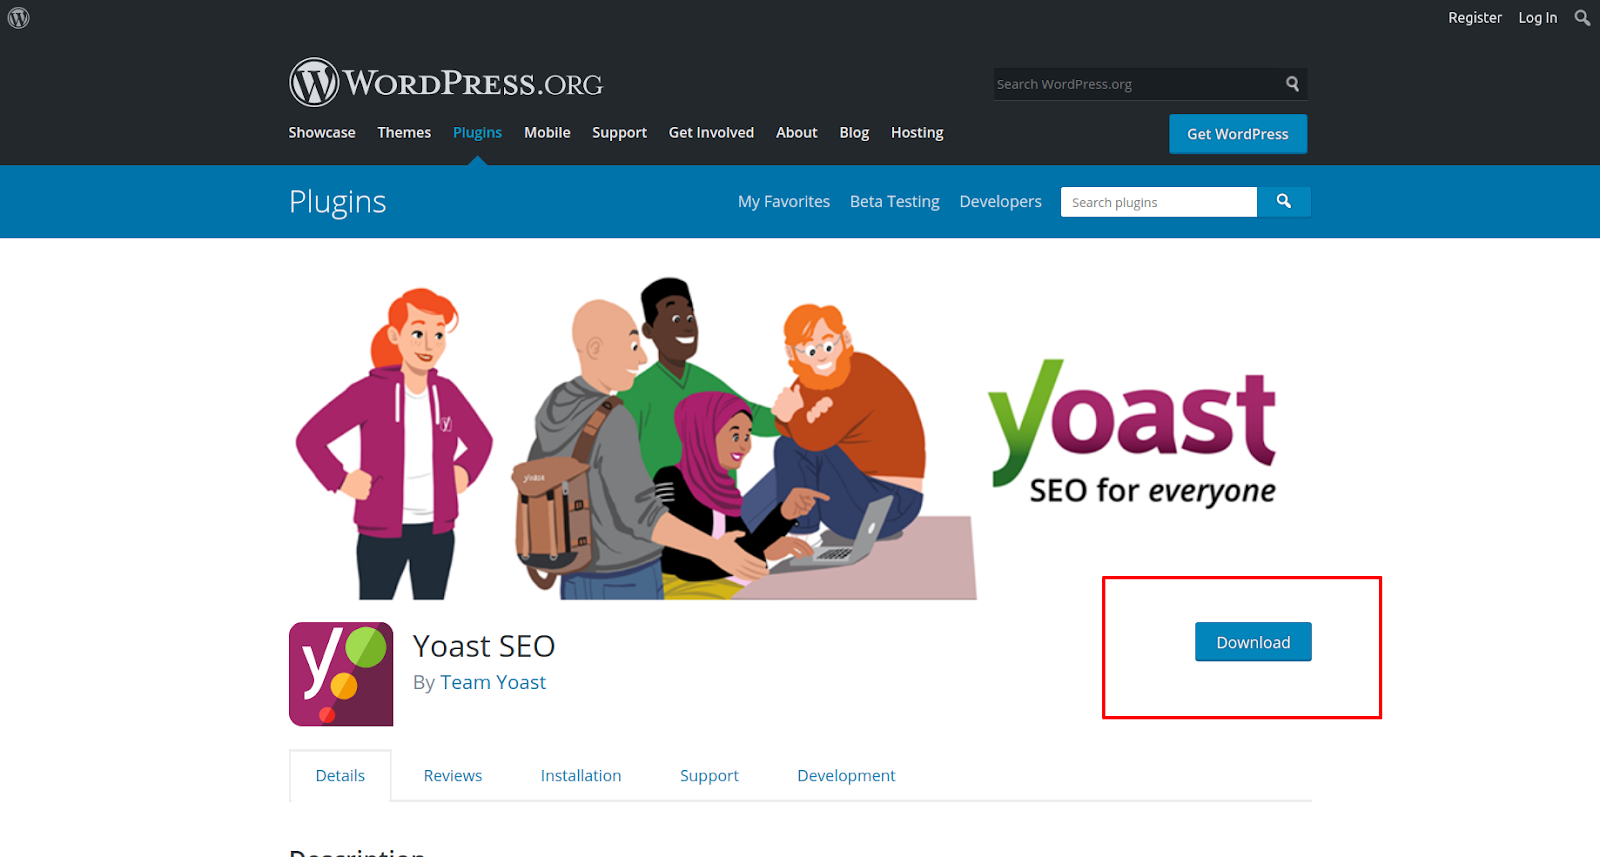 yoast wordpress seo plugin download button